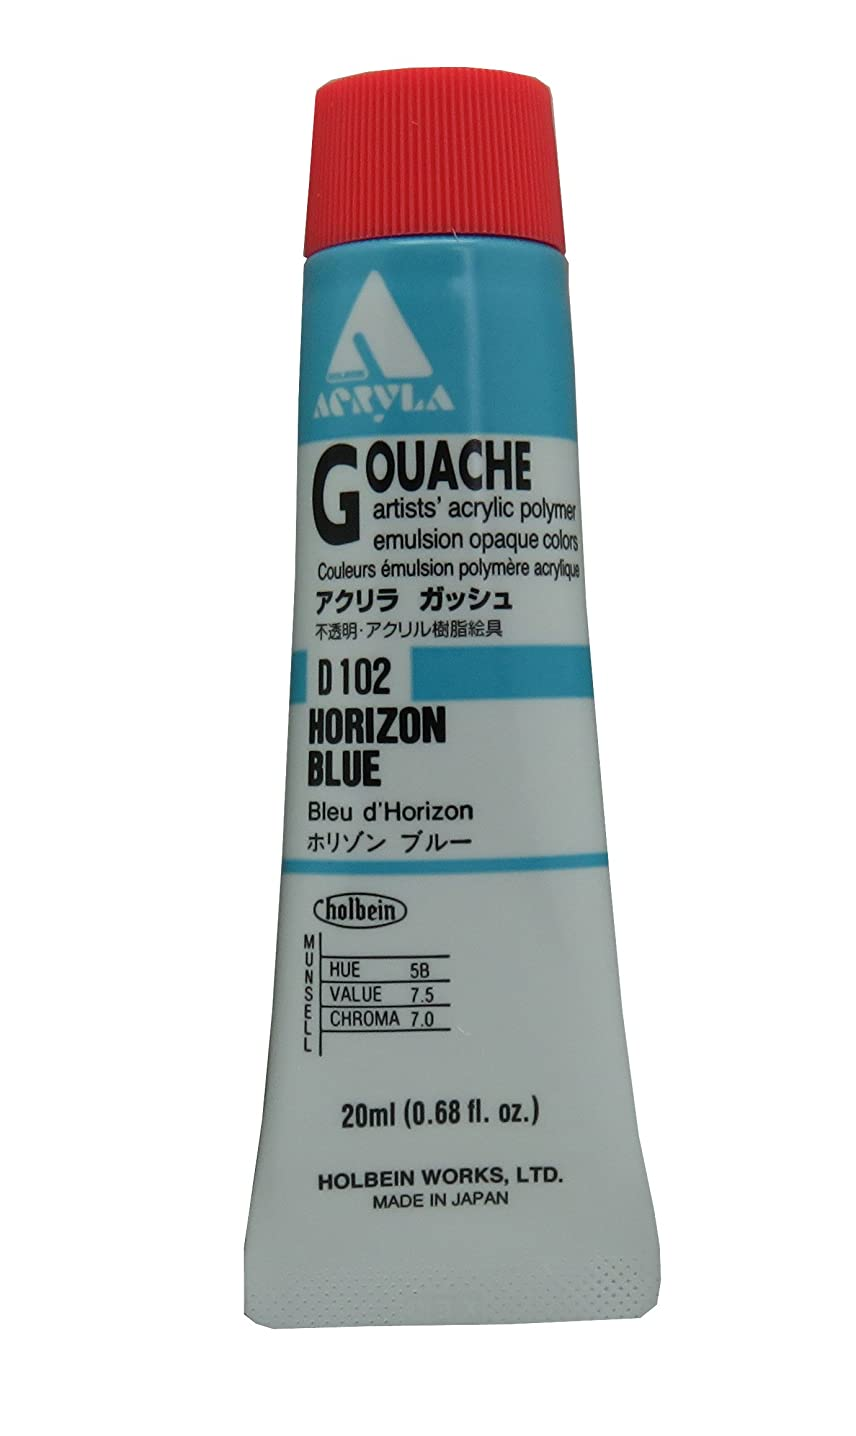 Holbein Acryla Gouache Artists Acrylic Polymer Emulsion, 20ml Horizon Blue (D102)